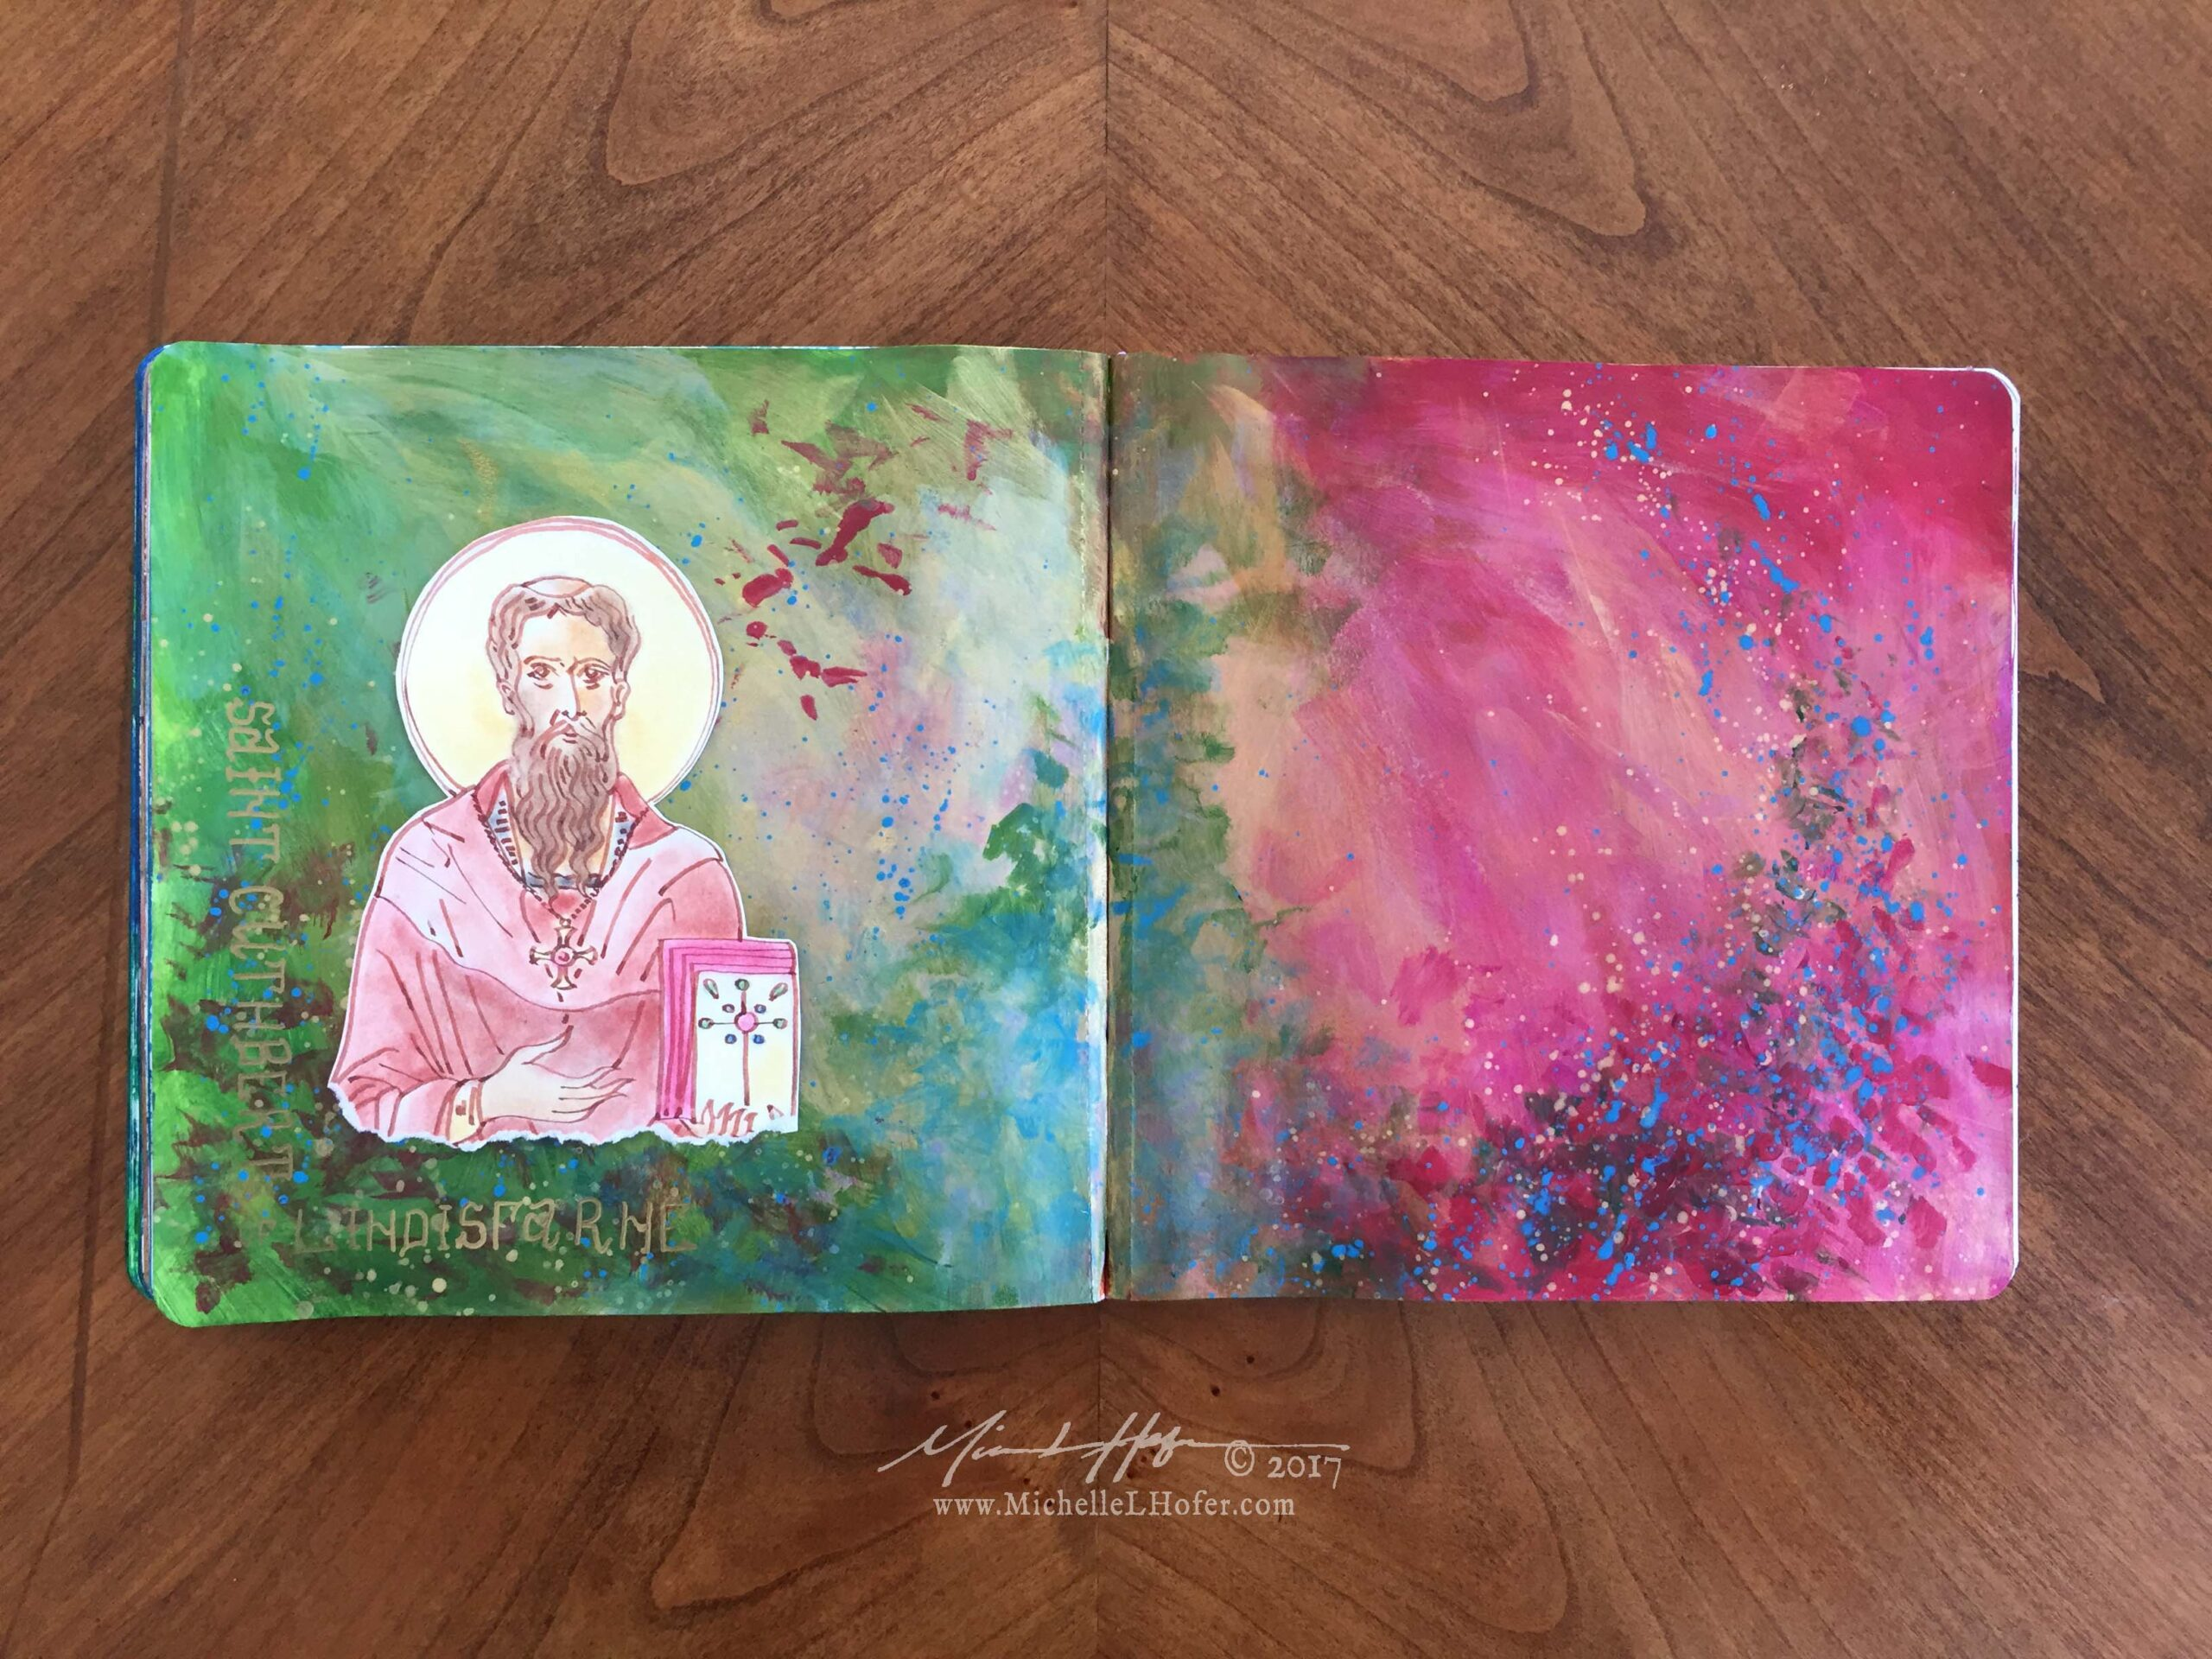 Saint Cuthbert the Wonder-Worker - Abstract acrylic painted double-page book spread featuring a pen and ink portrait of Saint Cuthbert of Lindisfarne with hand lettered name from the Book of Saints by Michelle L Hofer.